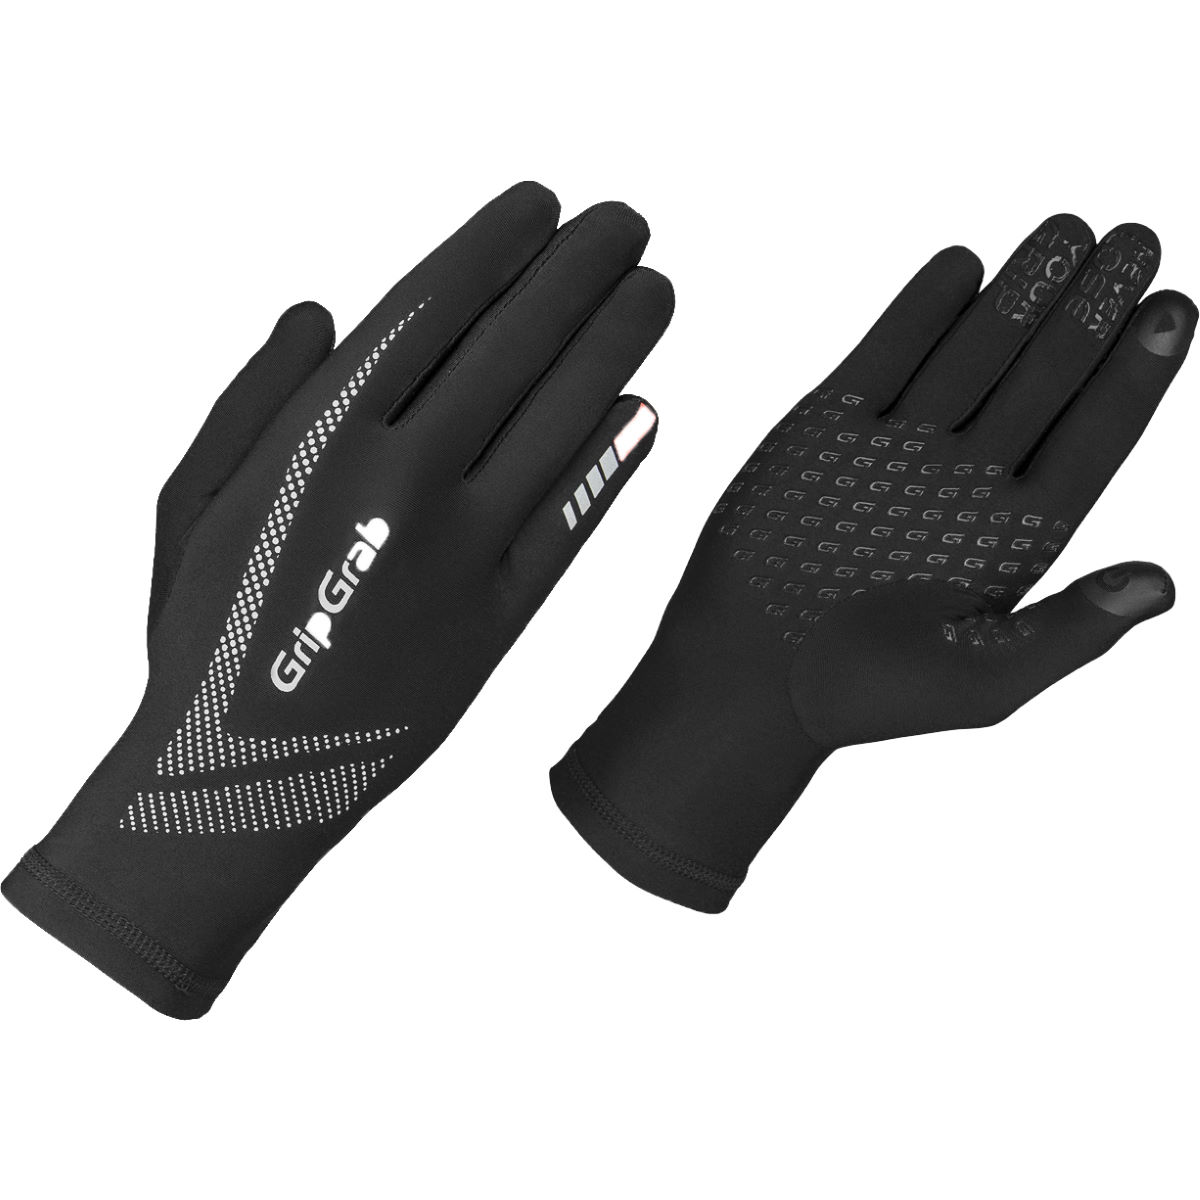 Gants de running GripGrab Ultra Light - XL Noir Gants de running